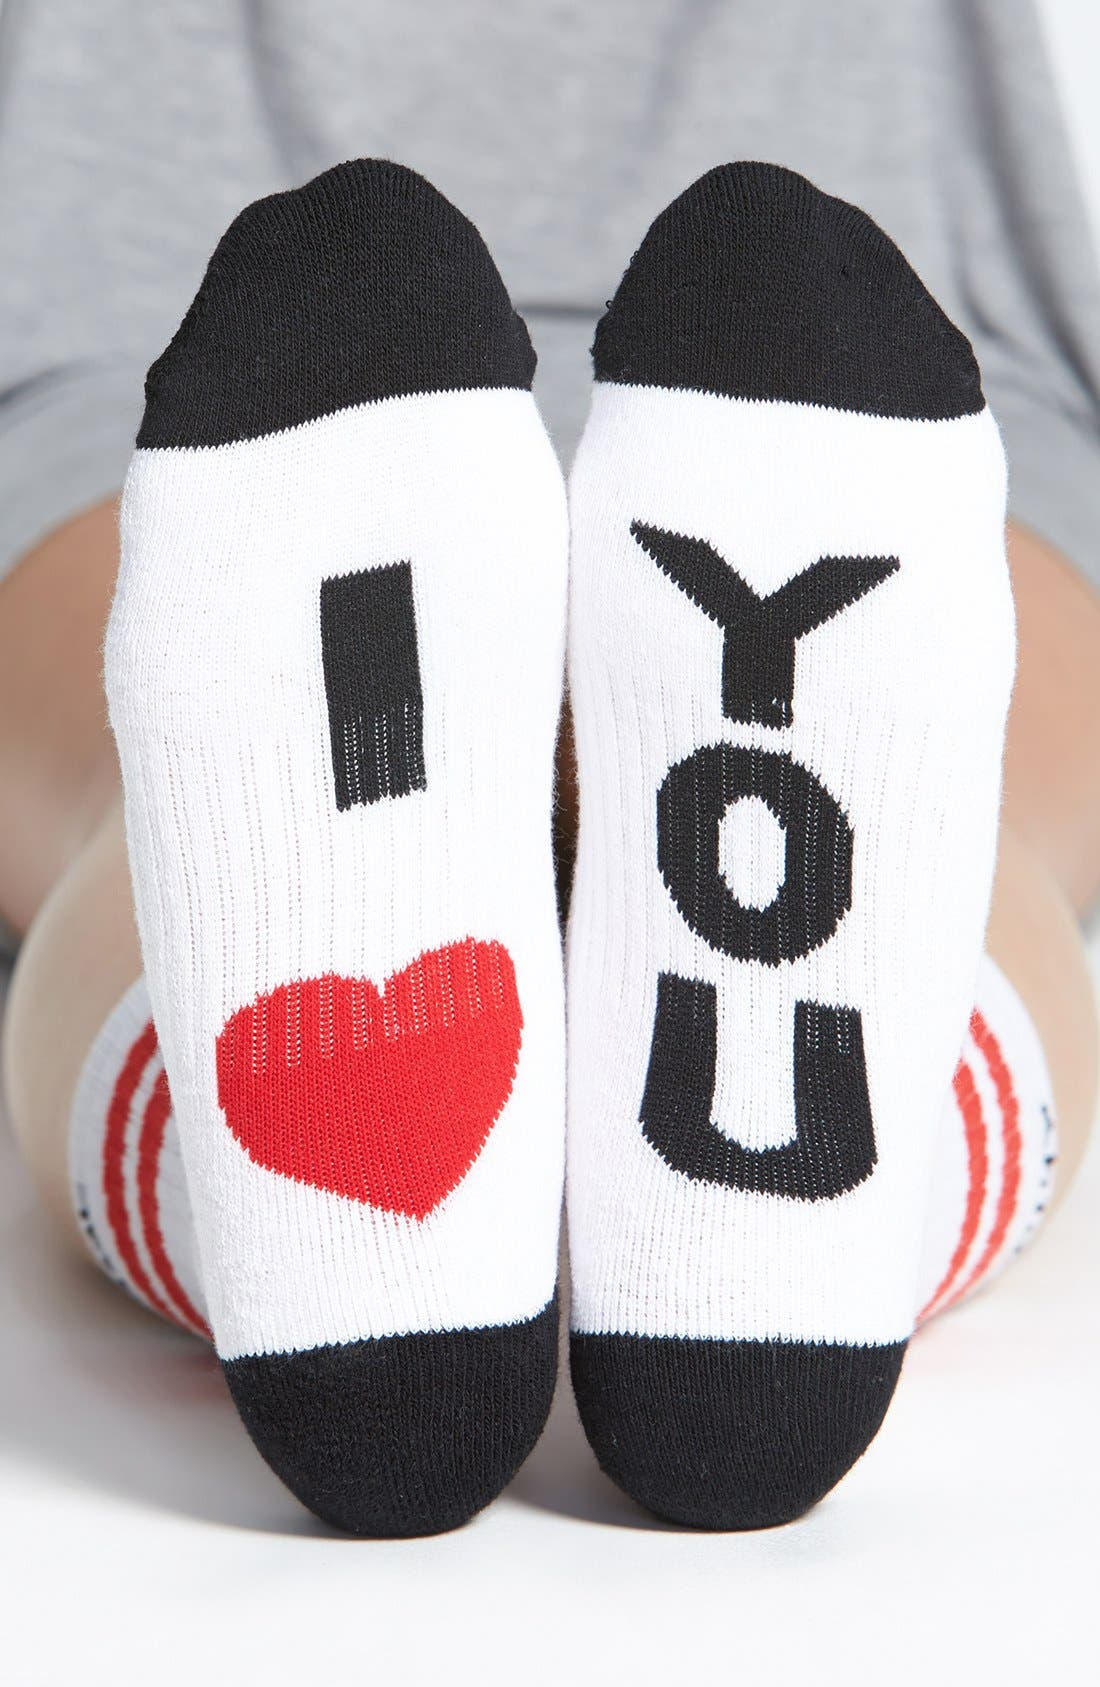 Main Image - Arthur George by R. Kardashian 'I Love You' Socks